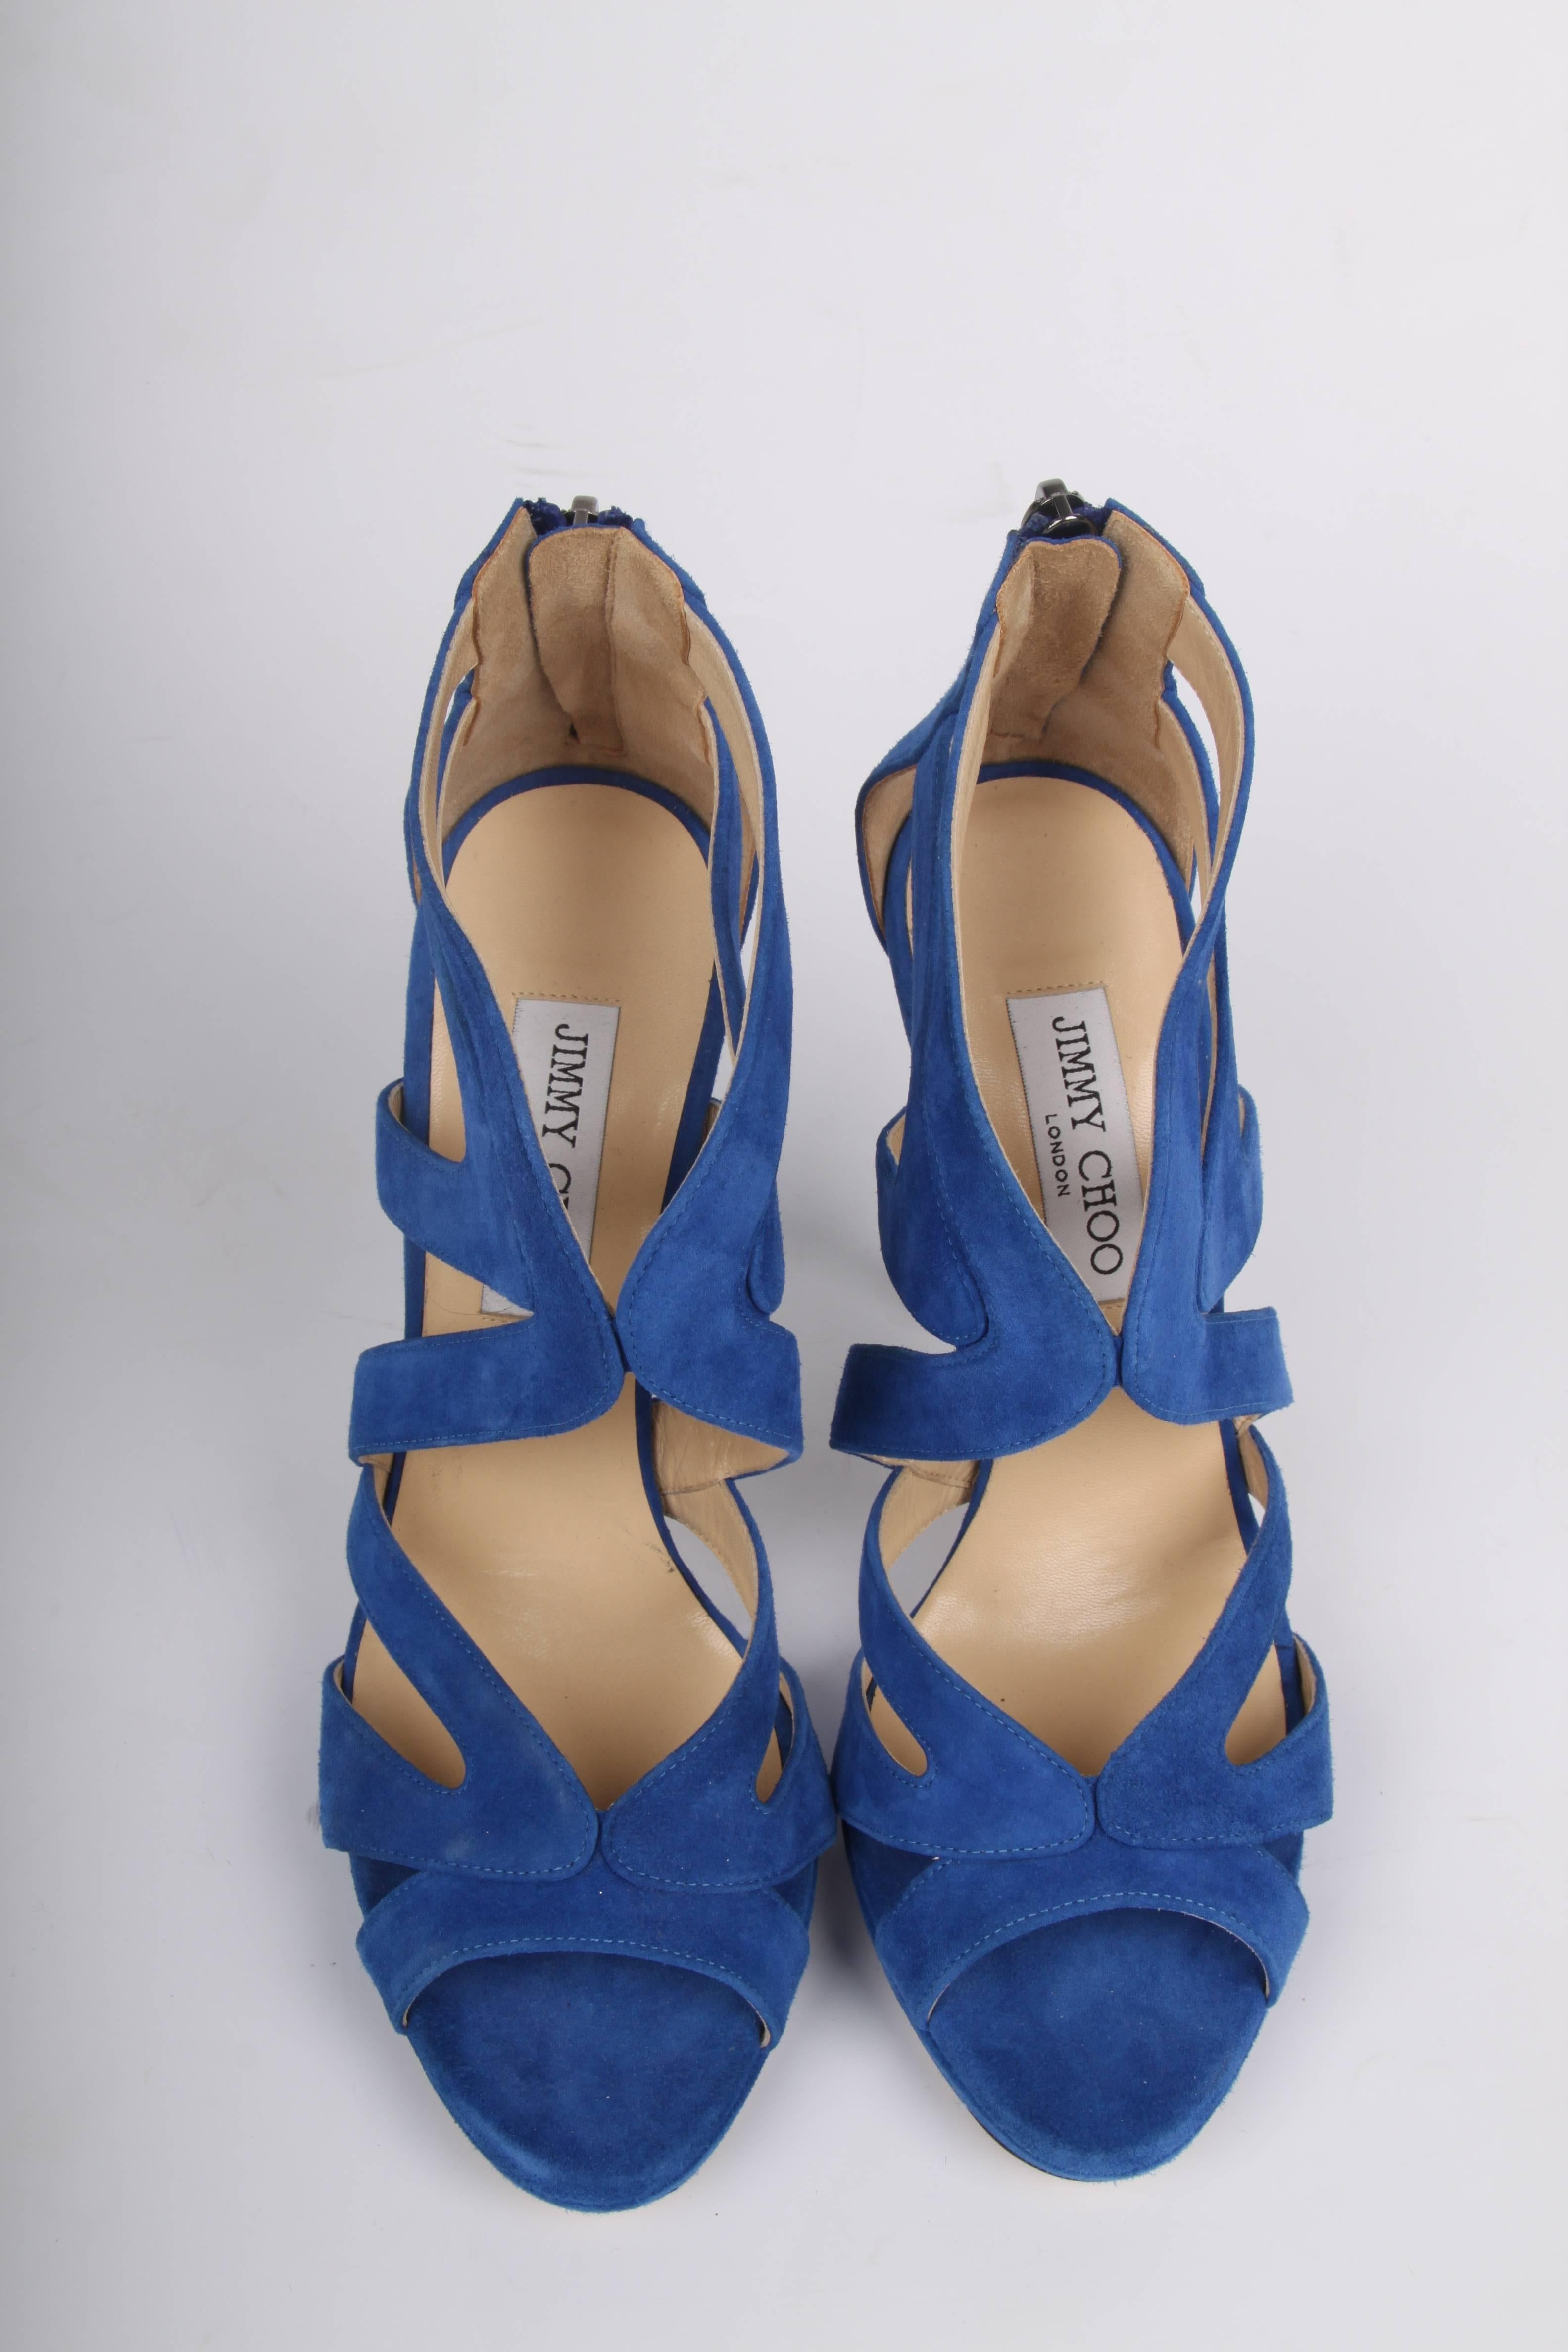 616a6f5cd7bc Jimmy Choo Peep Toe Suede Pumps - blue For Sale at 1stdibs